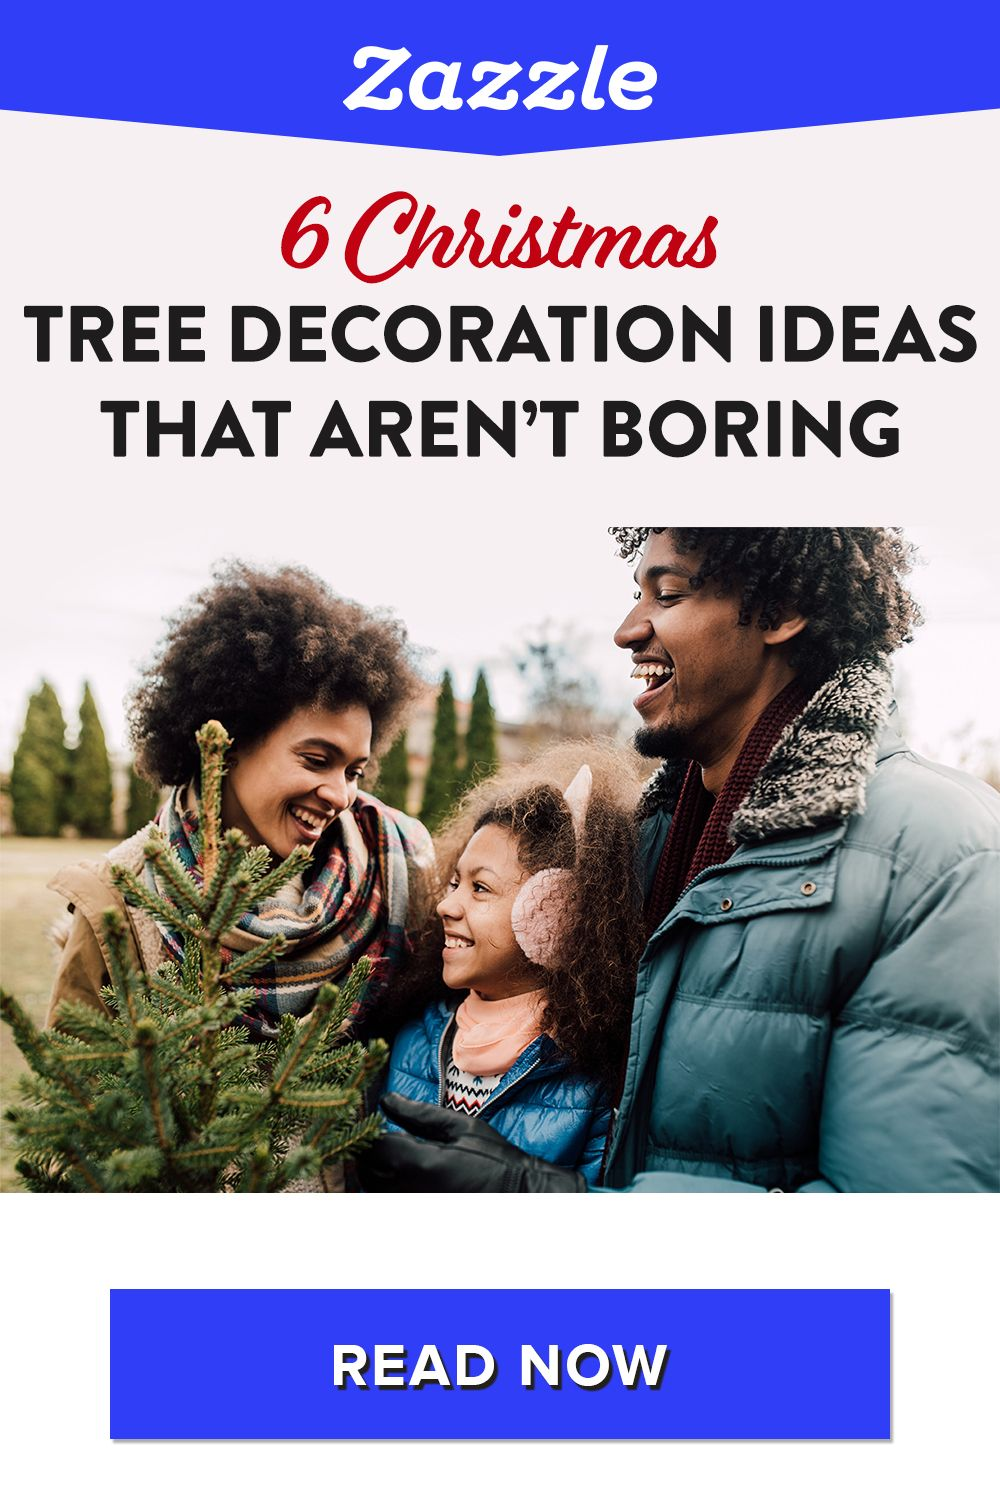 If you're looking to mix up your tree this year, check out our new and improved Christmas tree decorations that are anything but boring! Shop Zazzle for all things holiday including ornaments, holiday decor, Christmas cards, gifts and more!